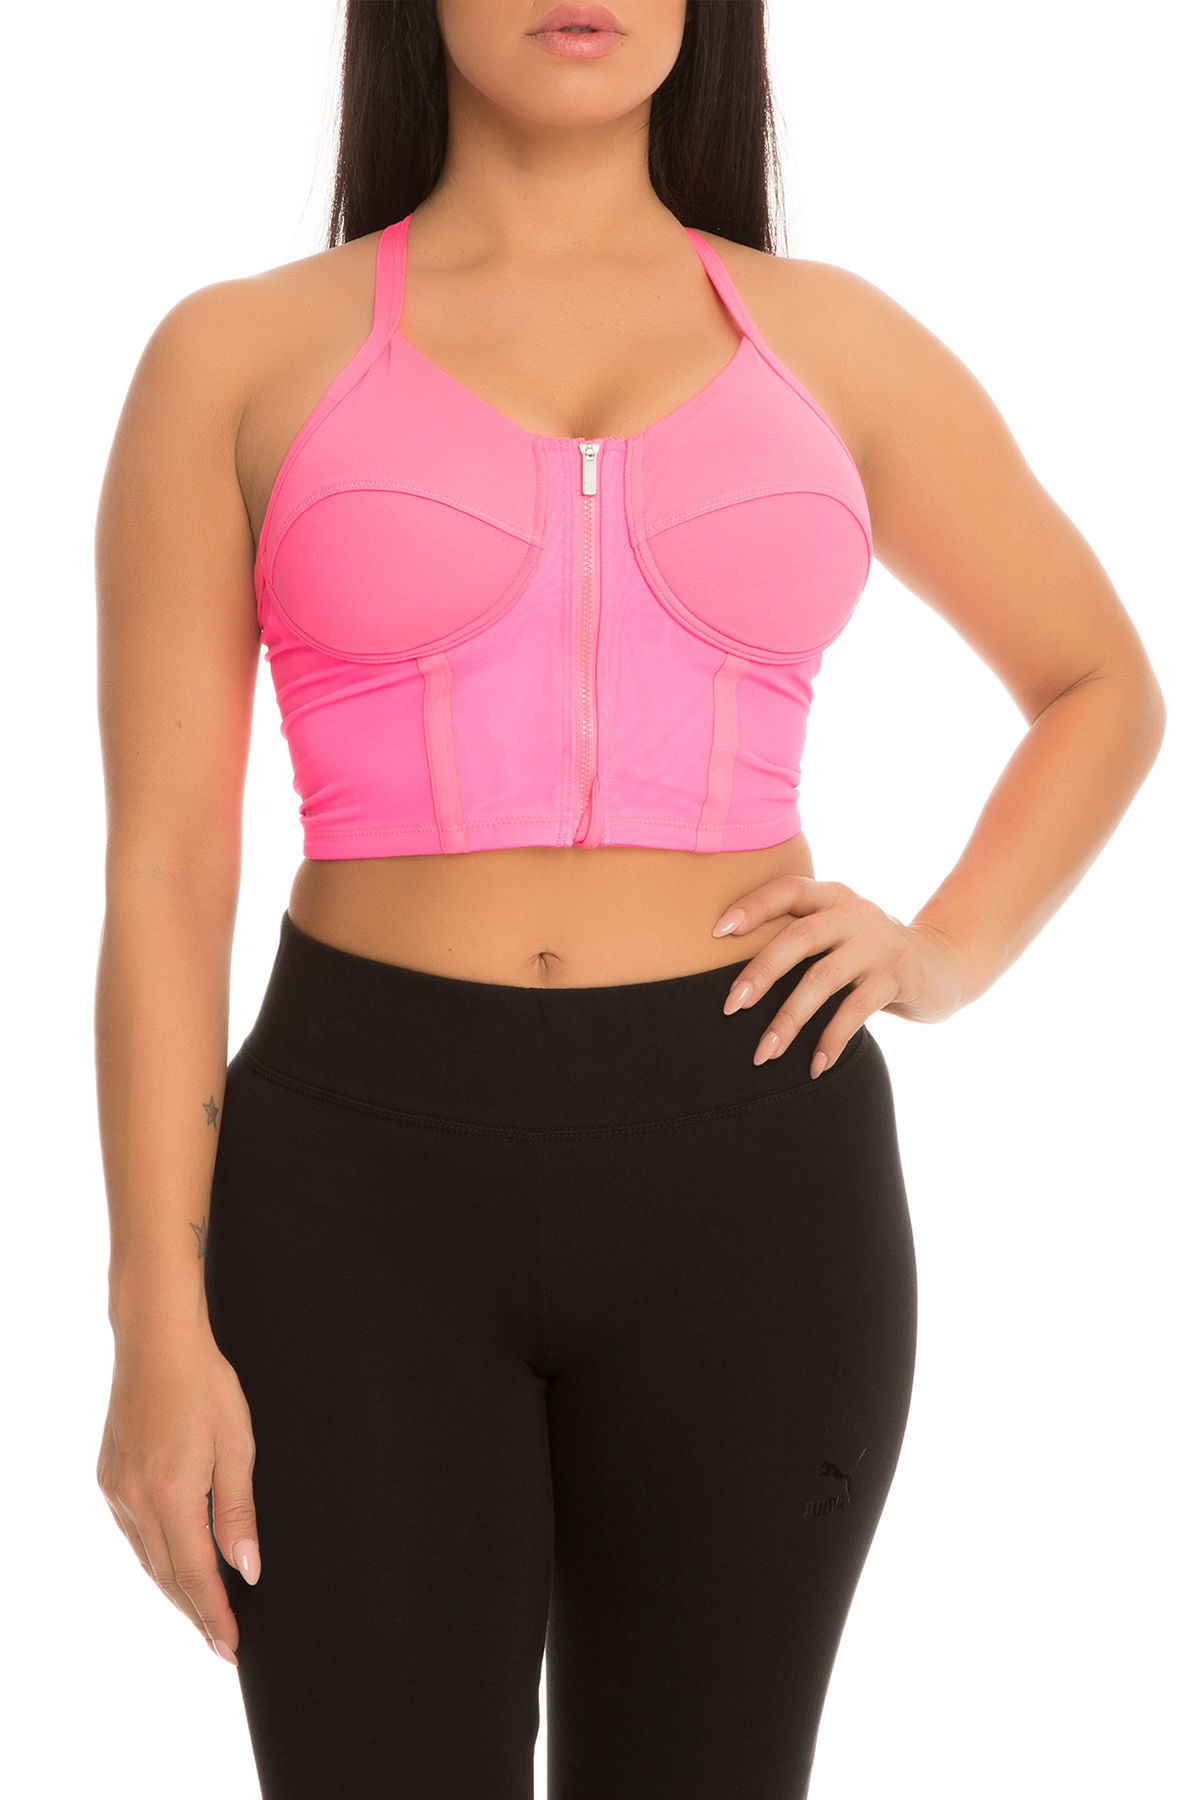 the explosive sports bra in pink